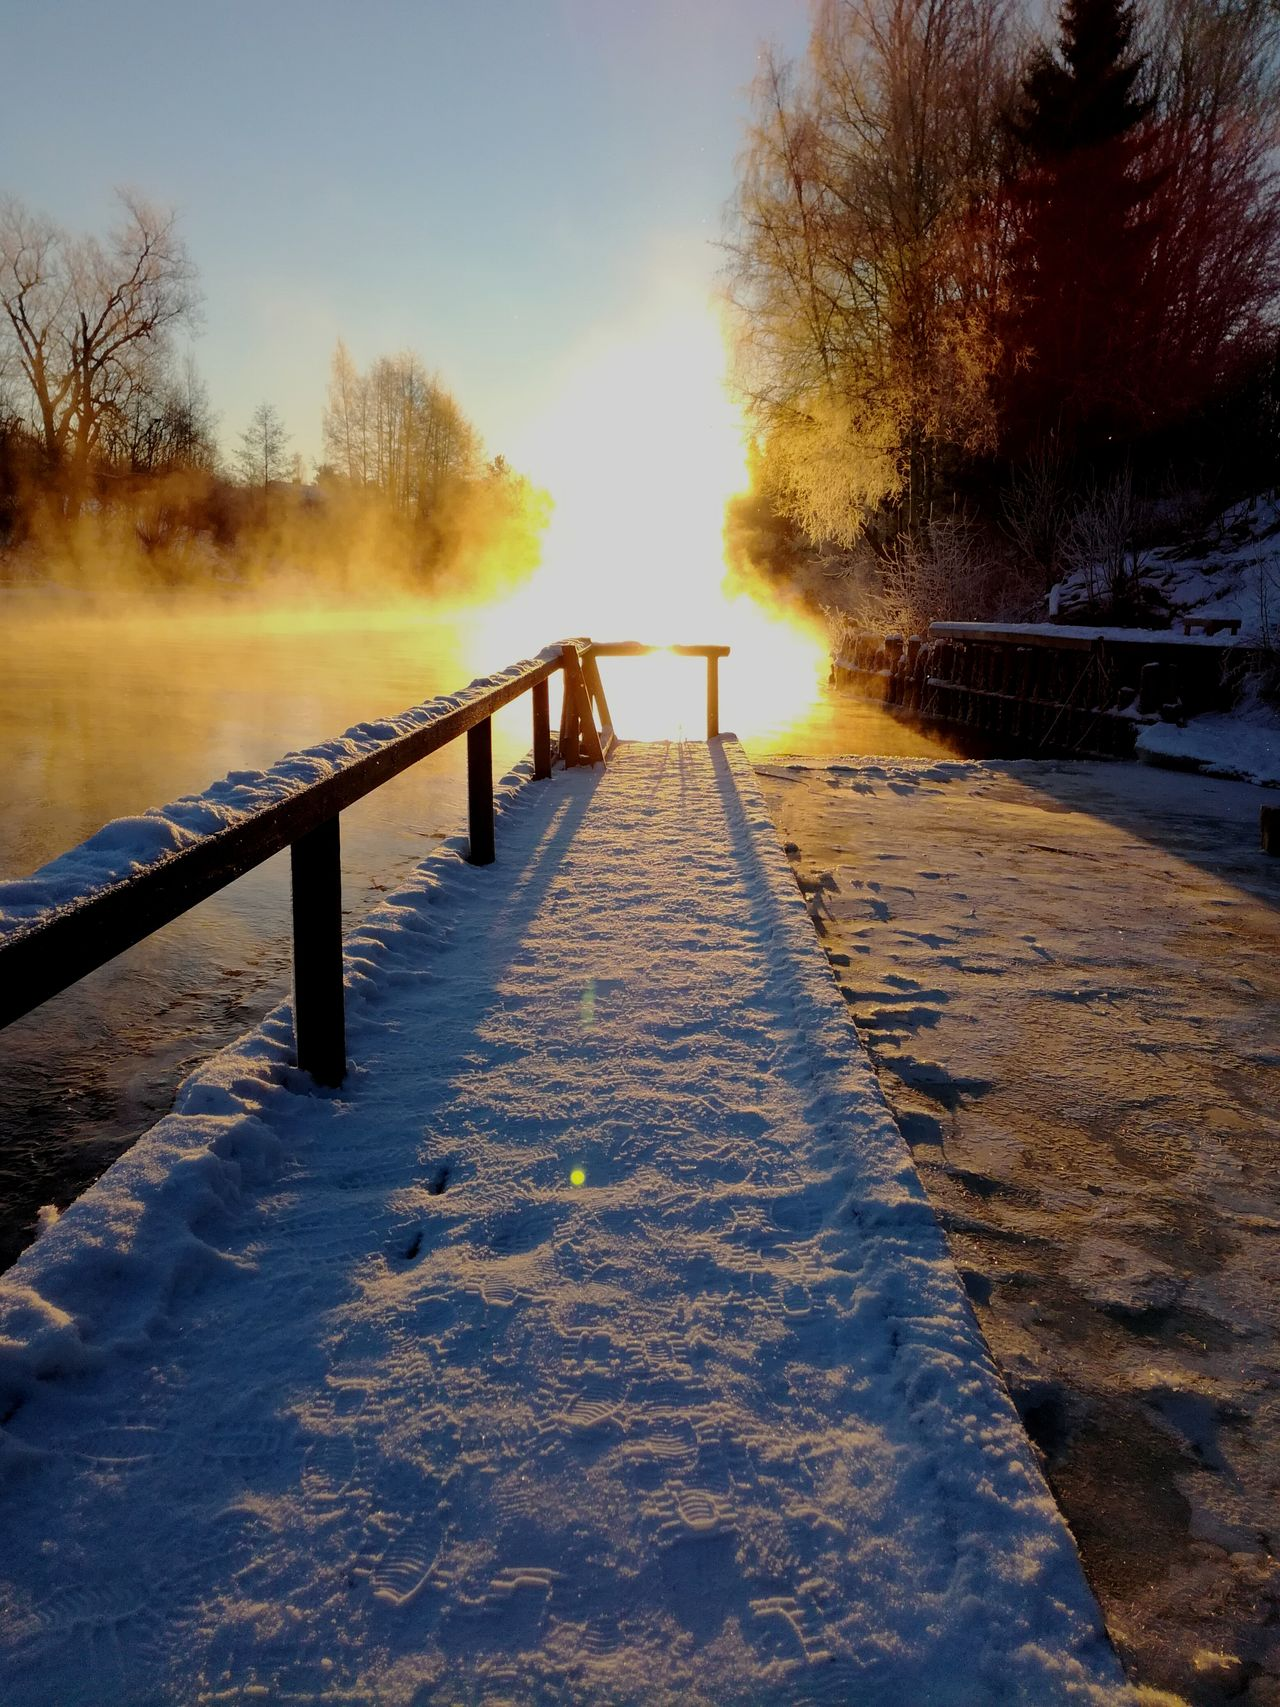 Water Nature No People Beauty In Nature Outdoors Steam Kotka, Finland Light And Shadow Wintertime Korkeakoski Early Morning Morning Ice Sun Sunlight Frozen Beauty In Nature Sunrise Landscape Winter Cold Temperature Snow Winter Sun River Pier